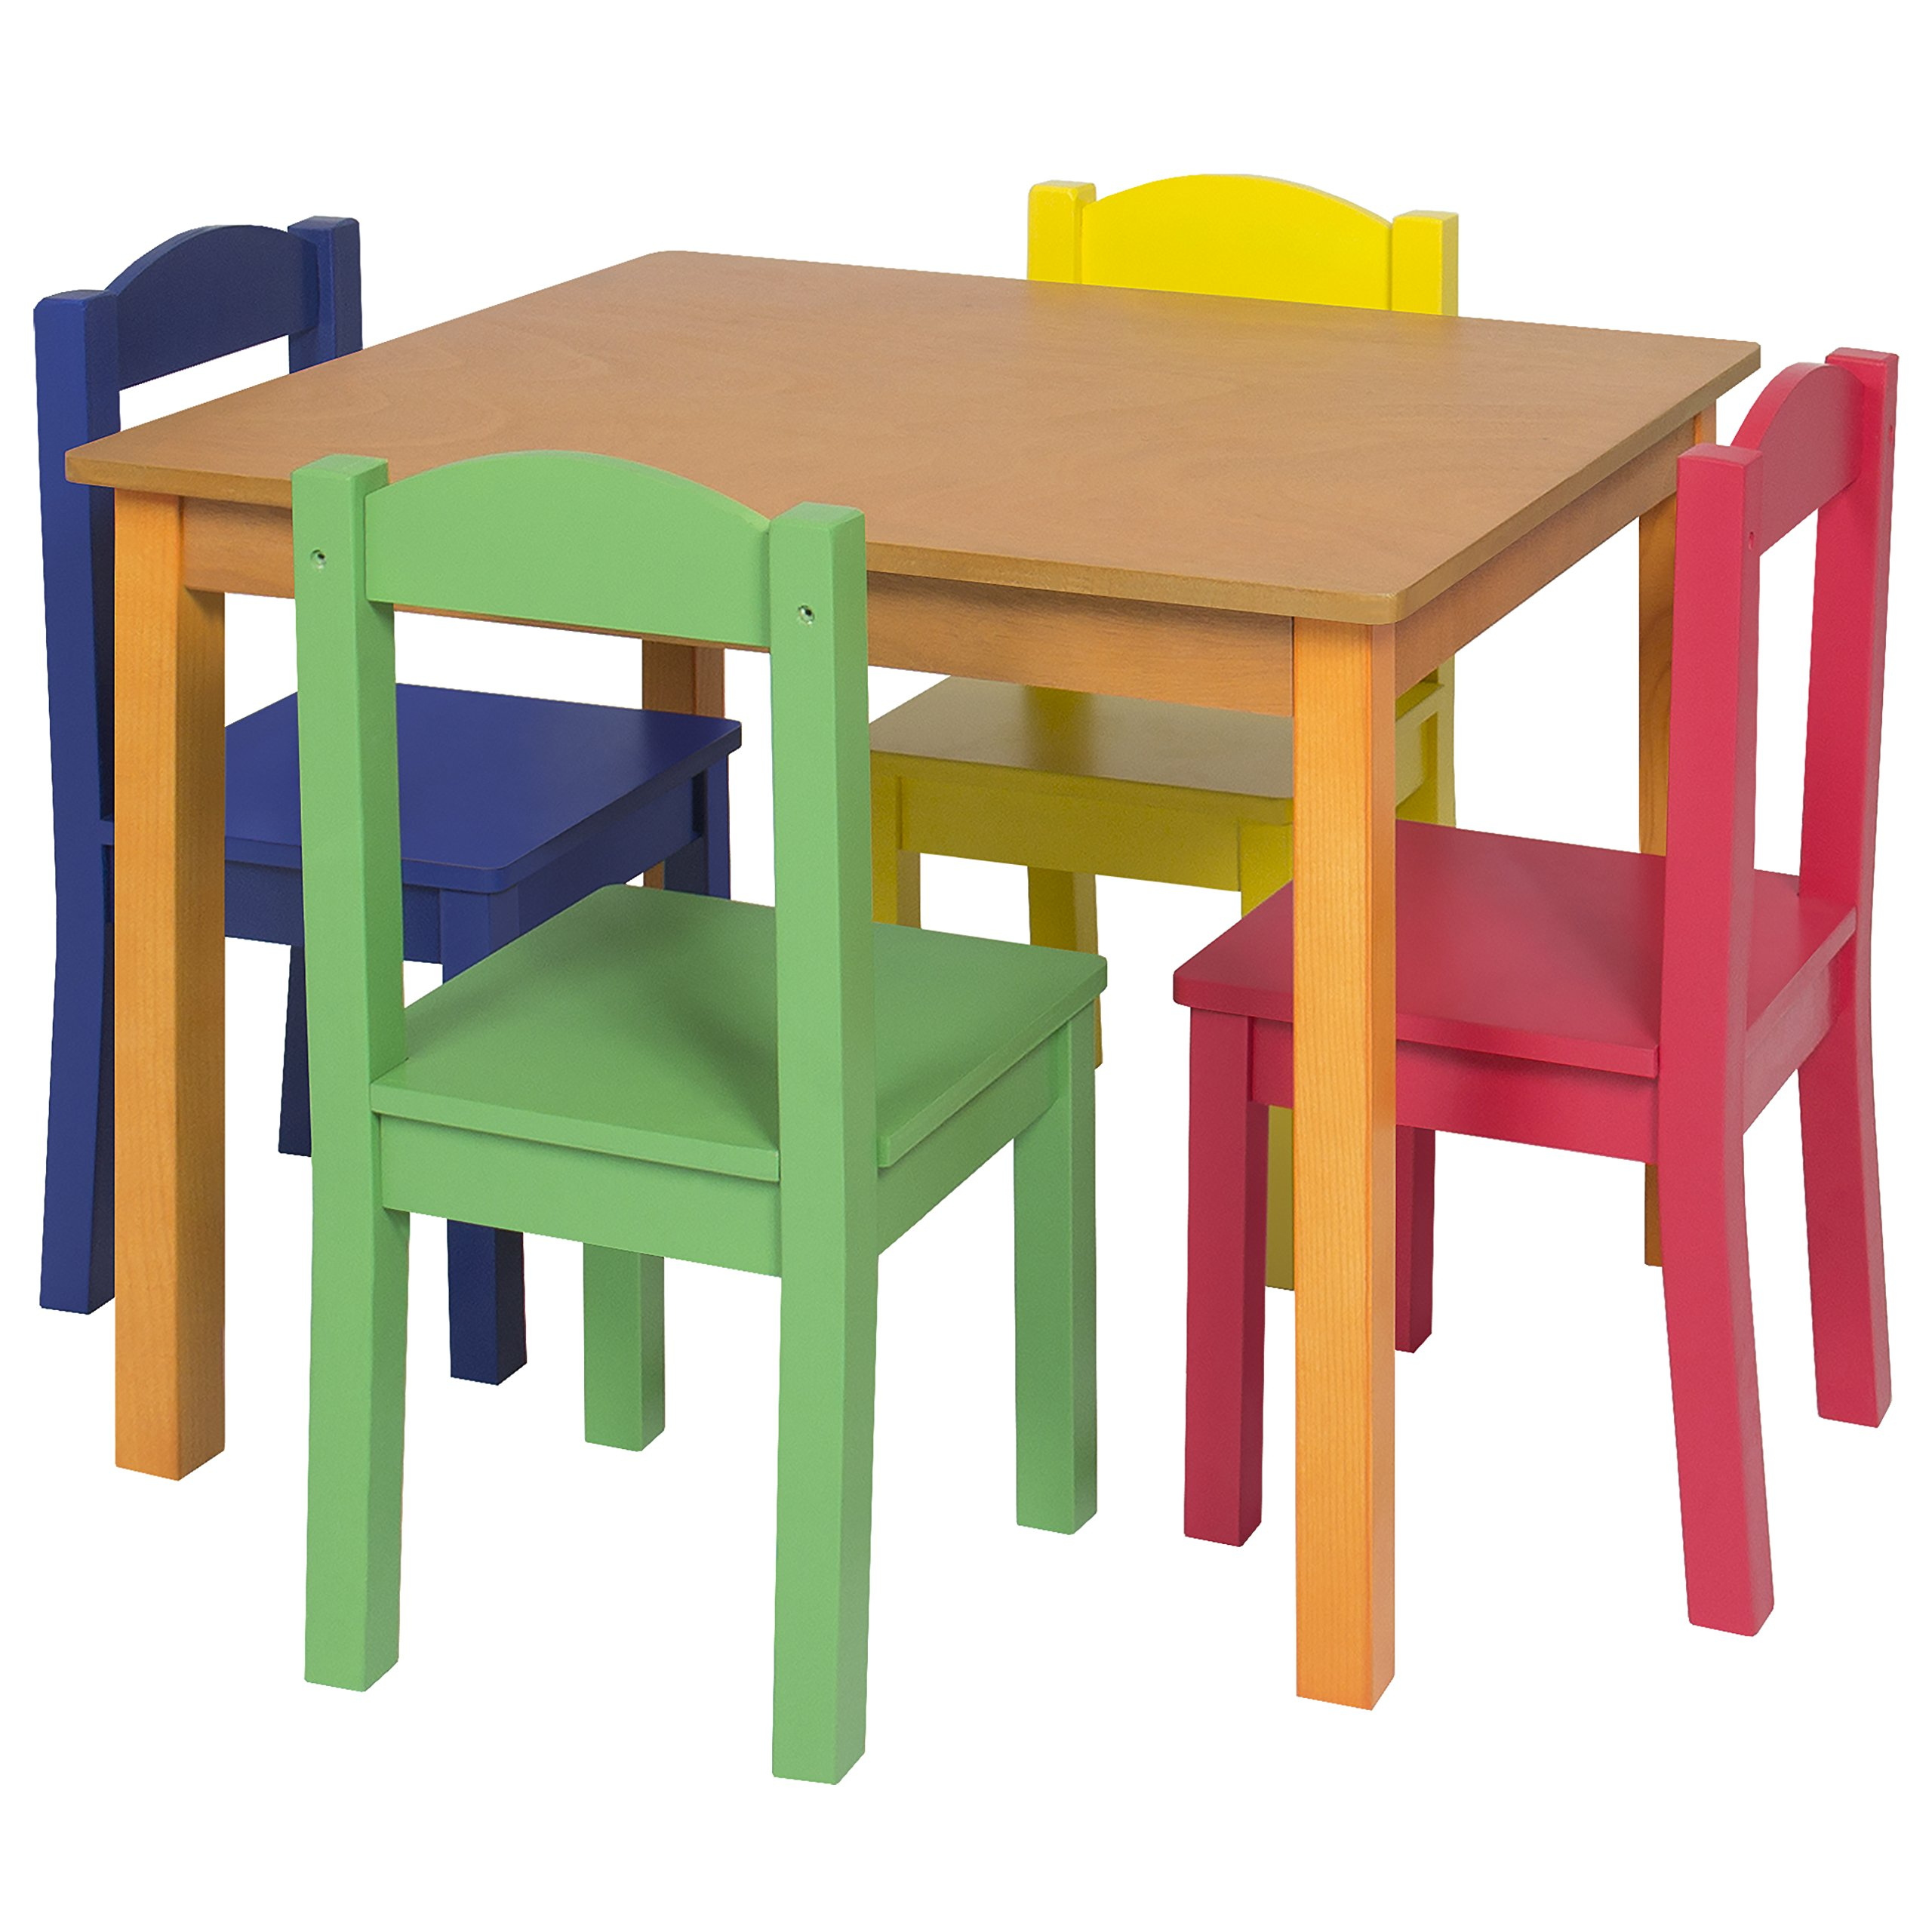 Best Choice Products Kids Wooden Table and 4 Chair Set Furniture- Primary/Natural